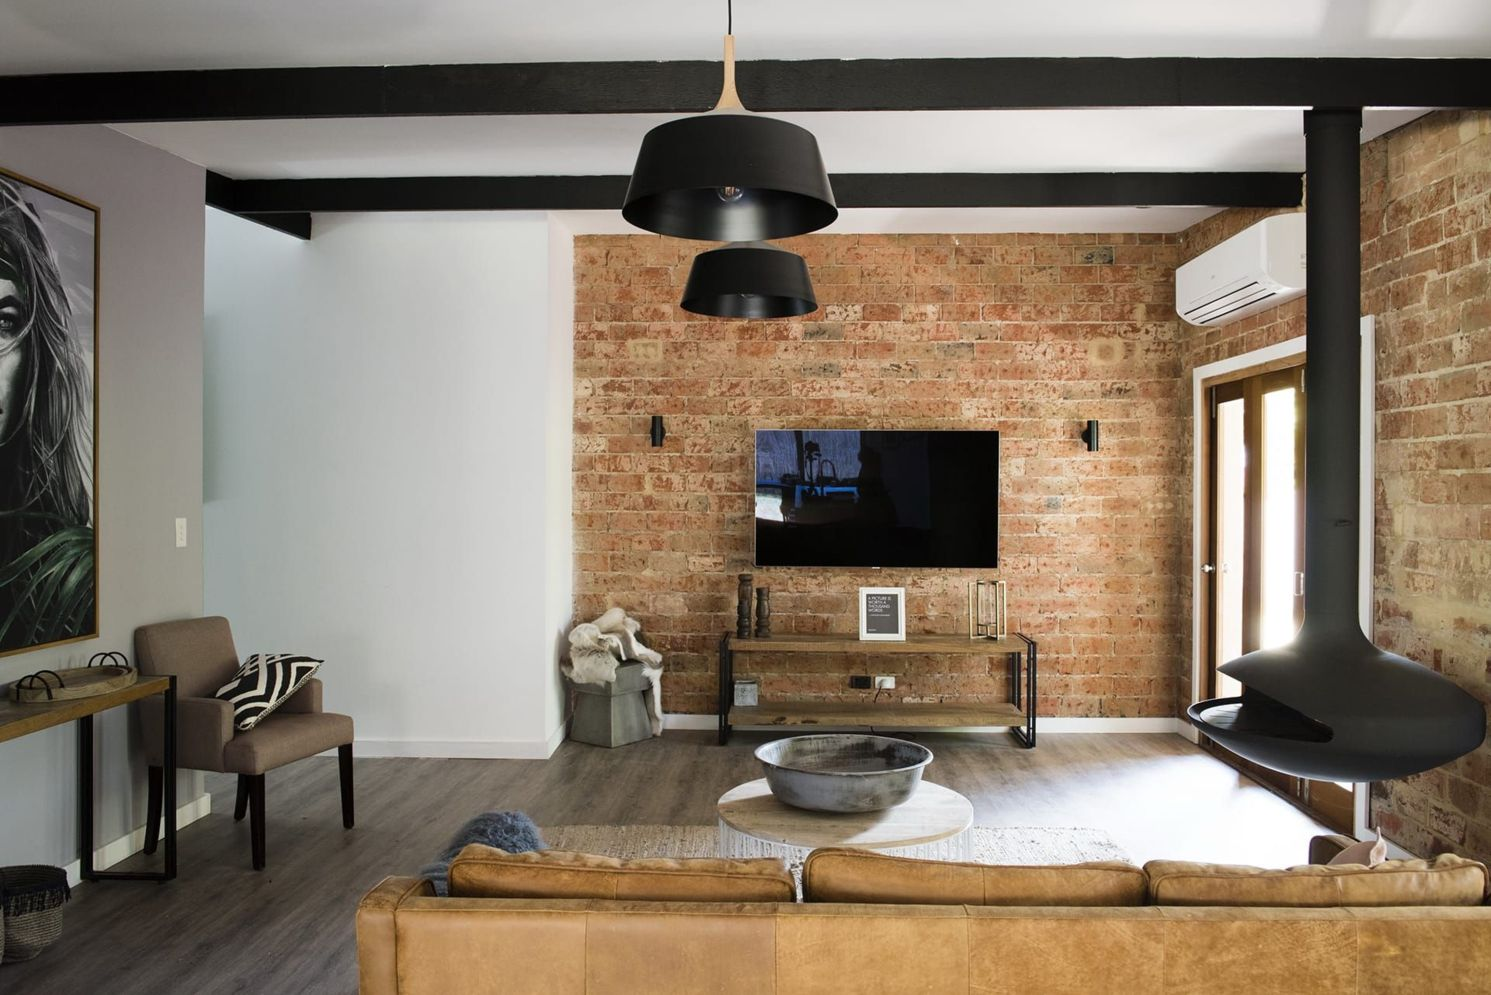 Clever ideas to make exotic interior update with rustic brick wall accents Image 14